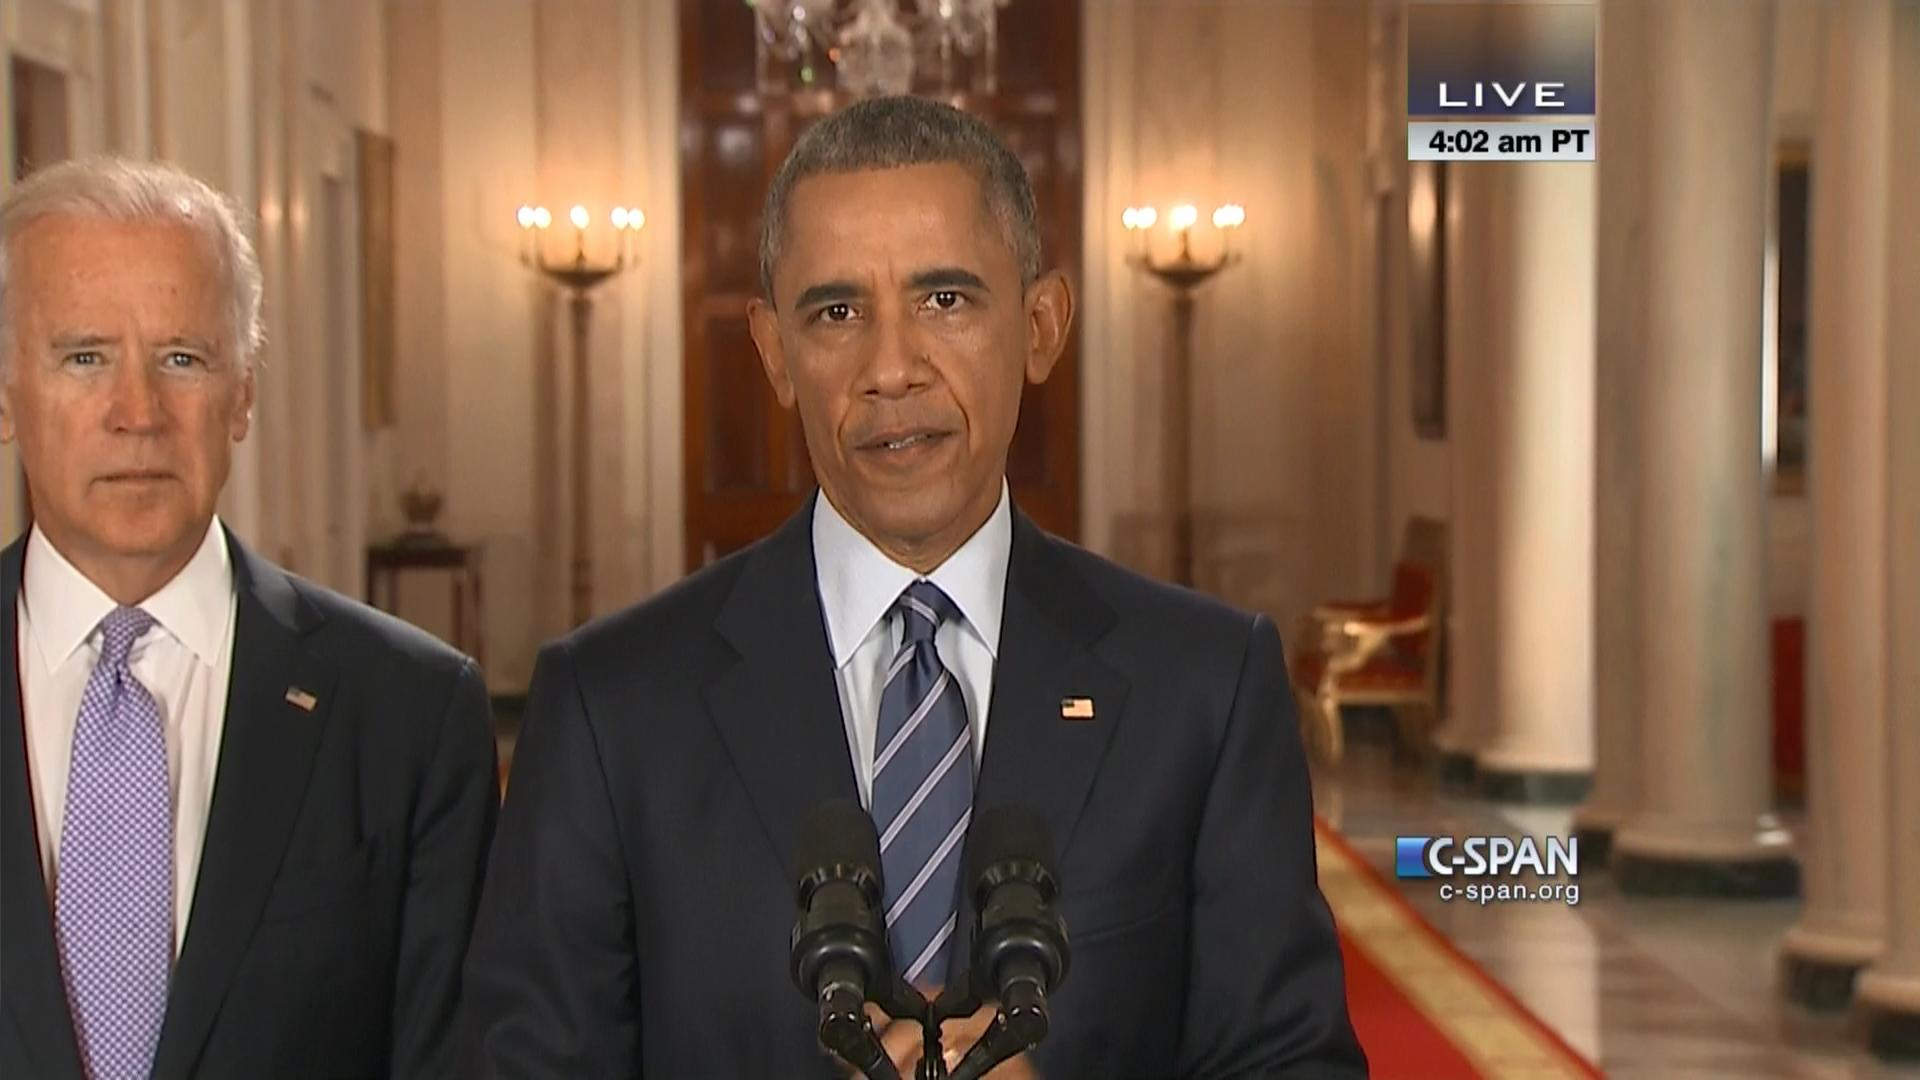 Iran Sex Videos Download Cool president obama news conference iran nuclear deal, jul 15 2015 | c